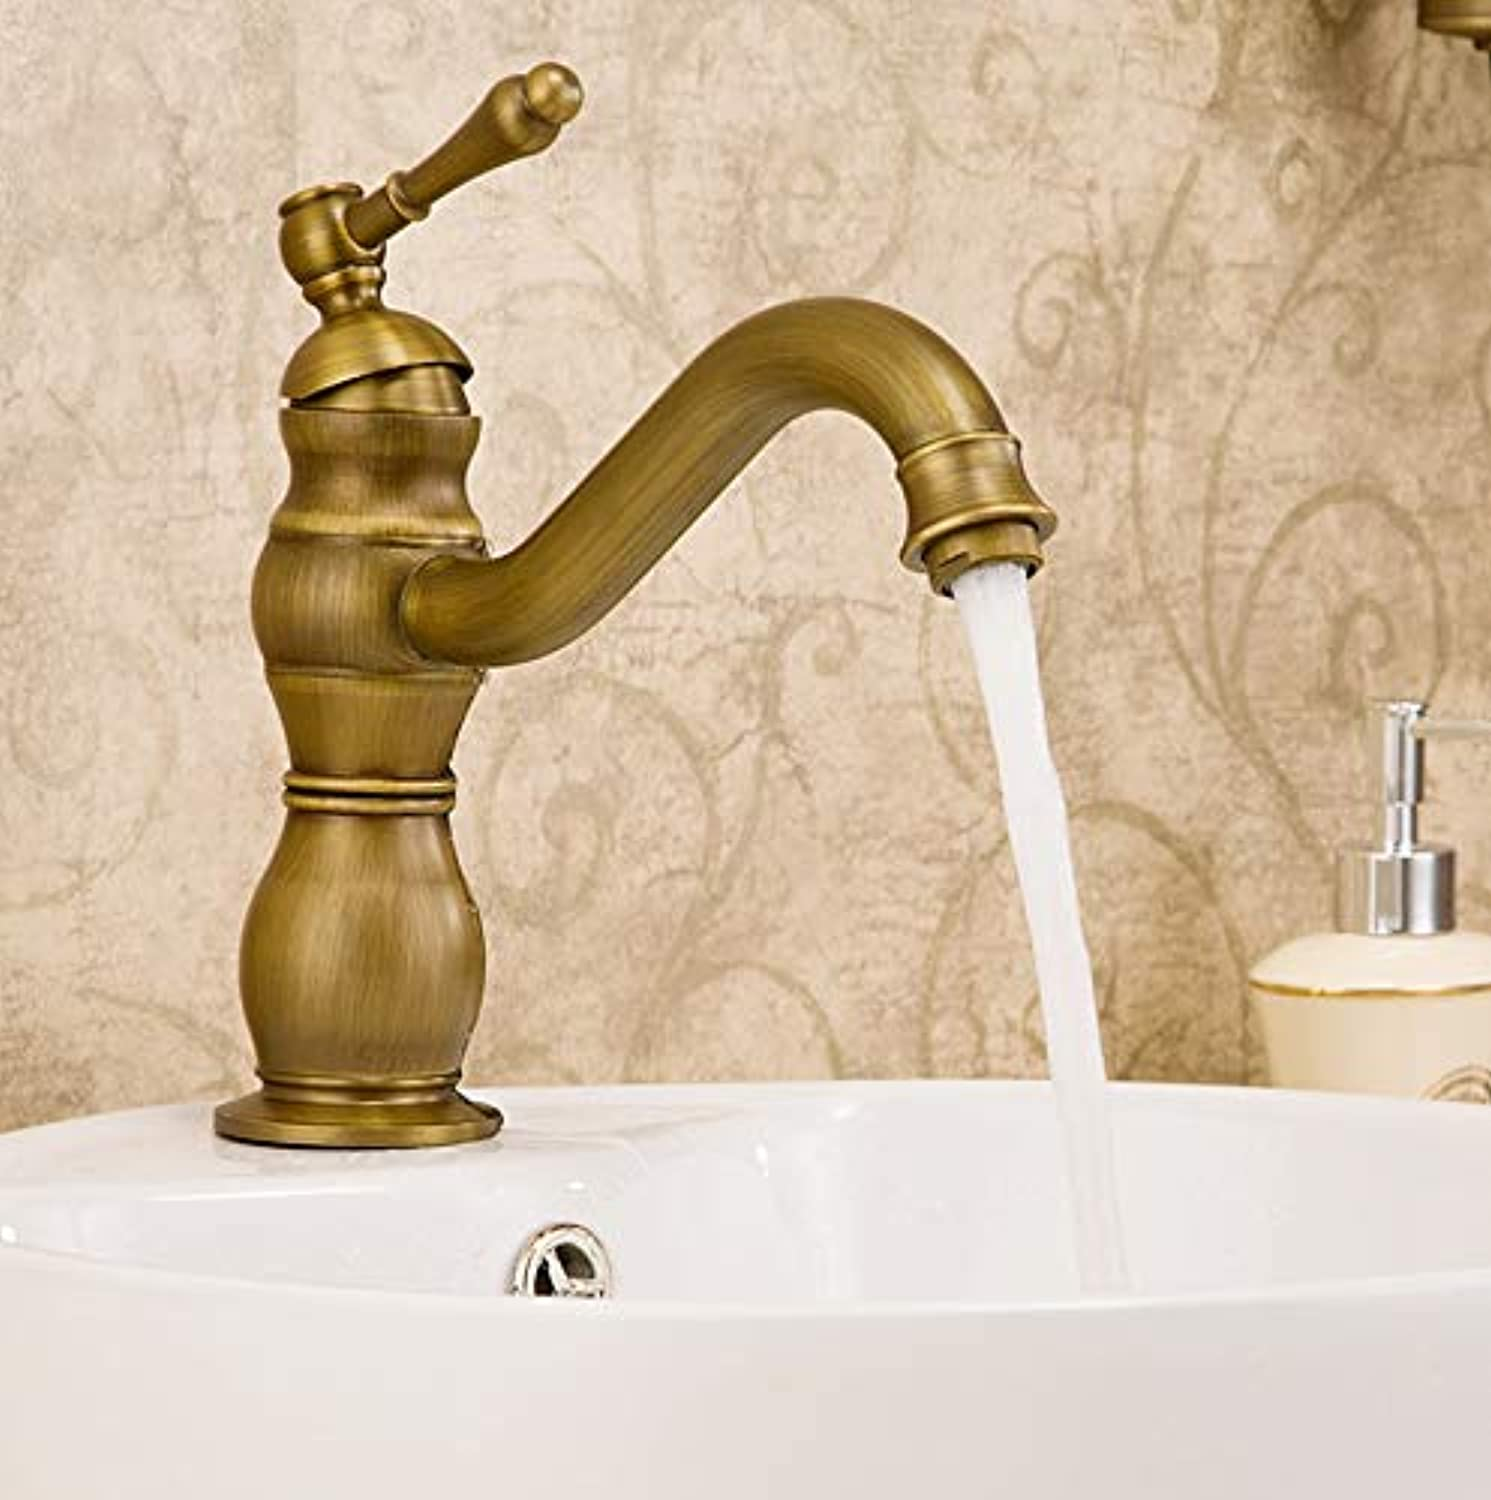 ROKTONG Faucet All-Copper European Basin Faucet redatable Washbasin Faucet Art Basin Hot And Cold Water Faucet